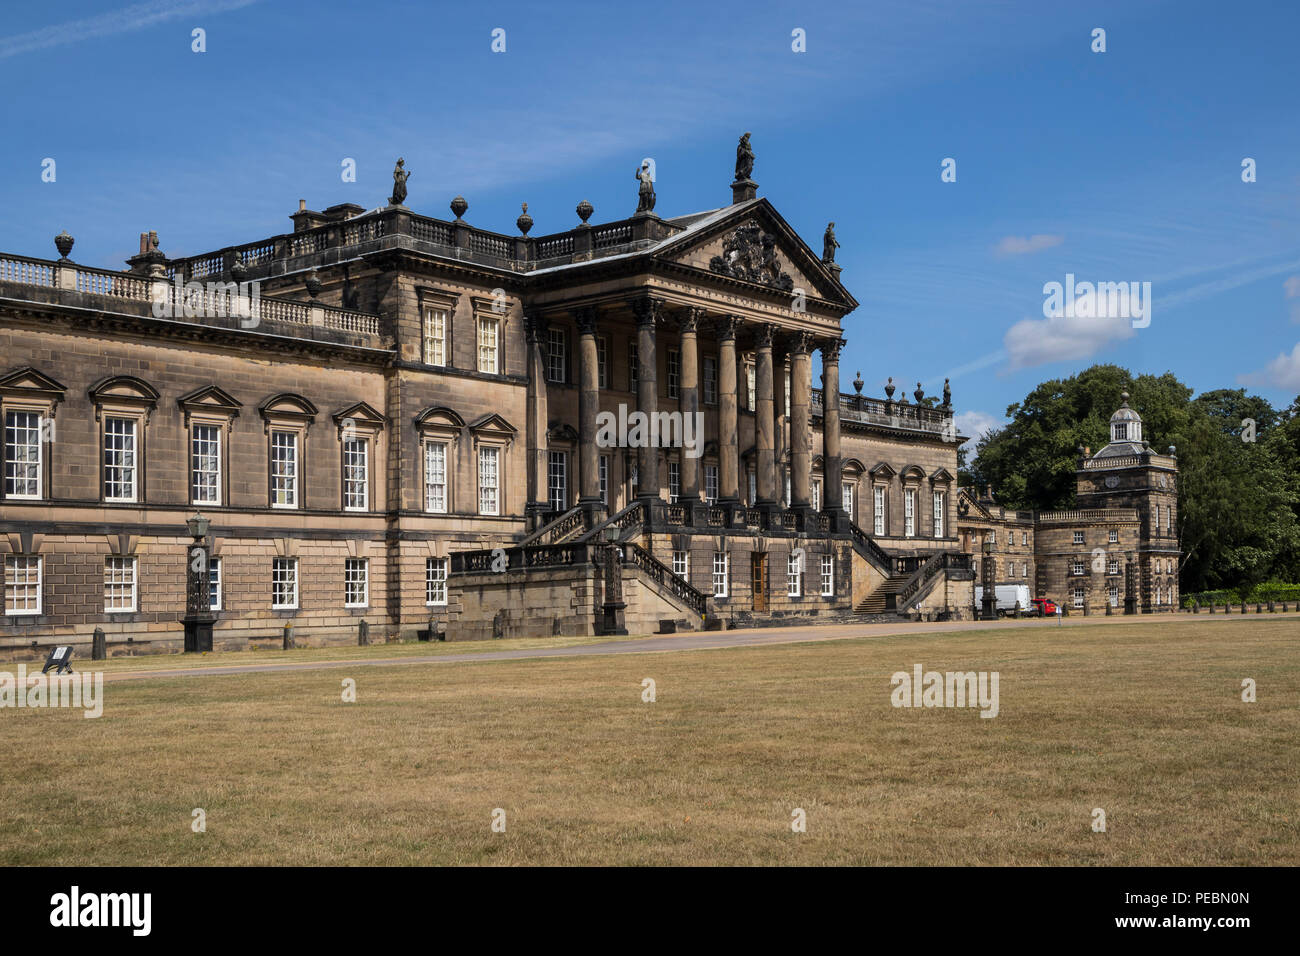 The East front of Wentworth Woodhouse, a Grade 1 listed country house near Rotherham, in South Yorkshire, UK Stock Photo